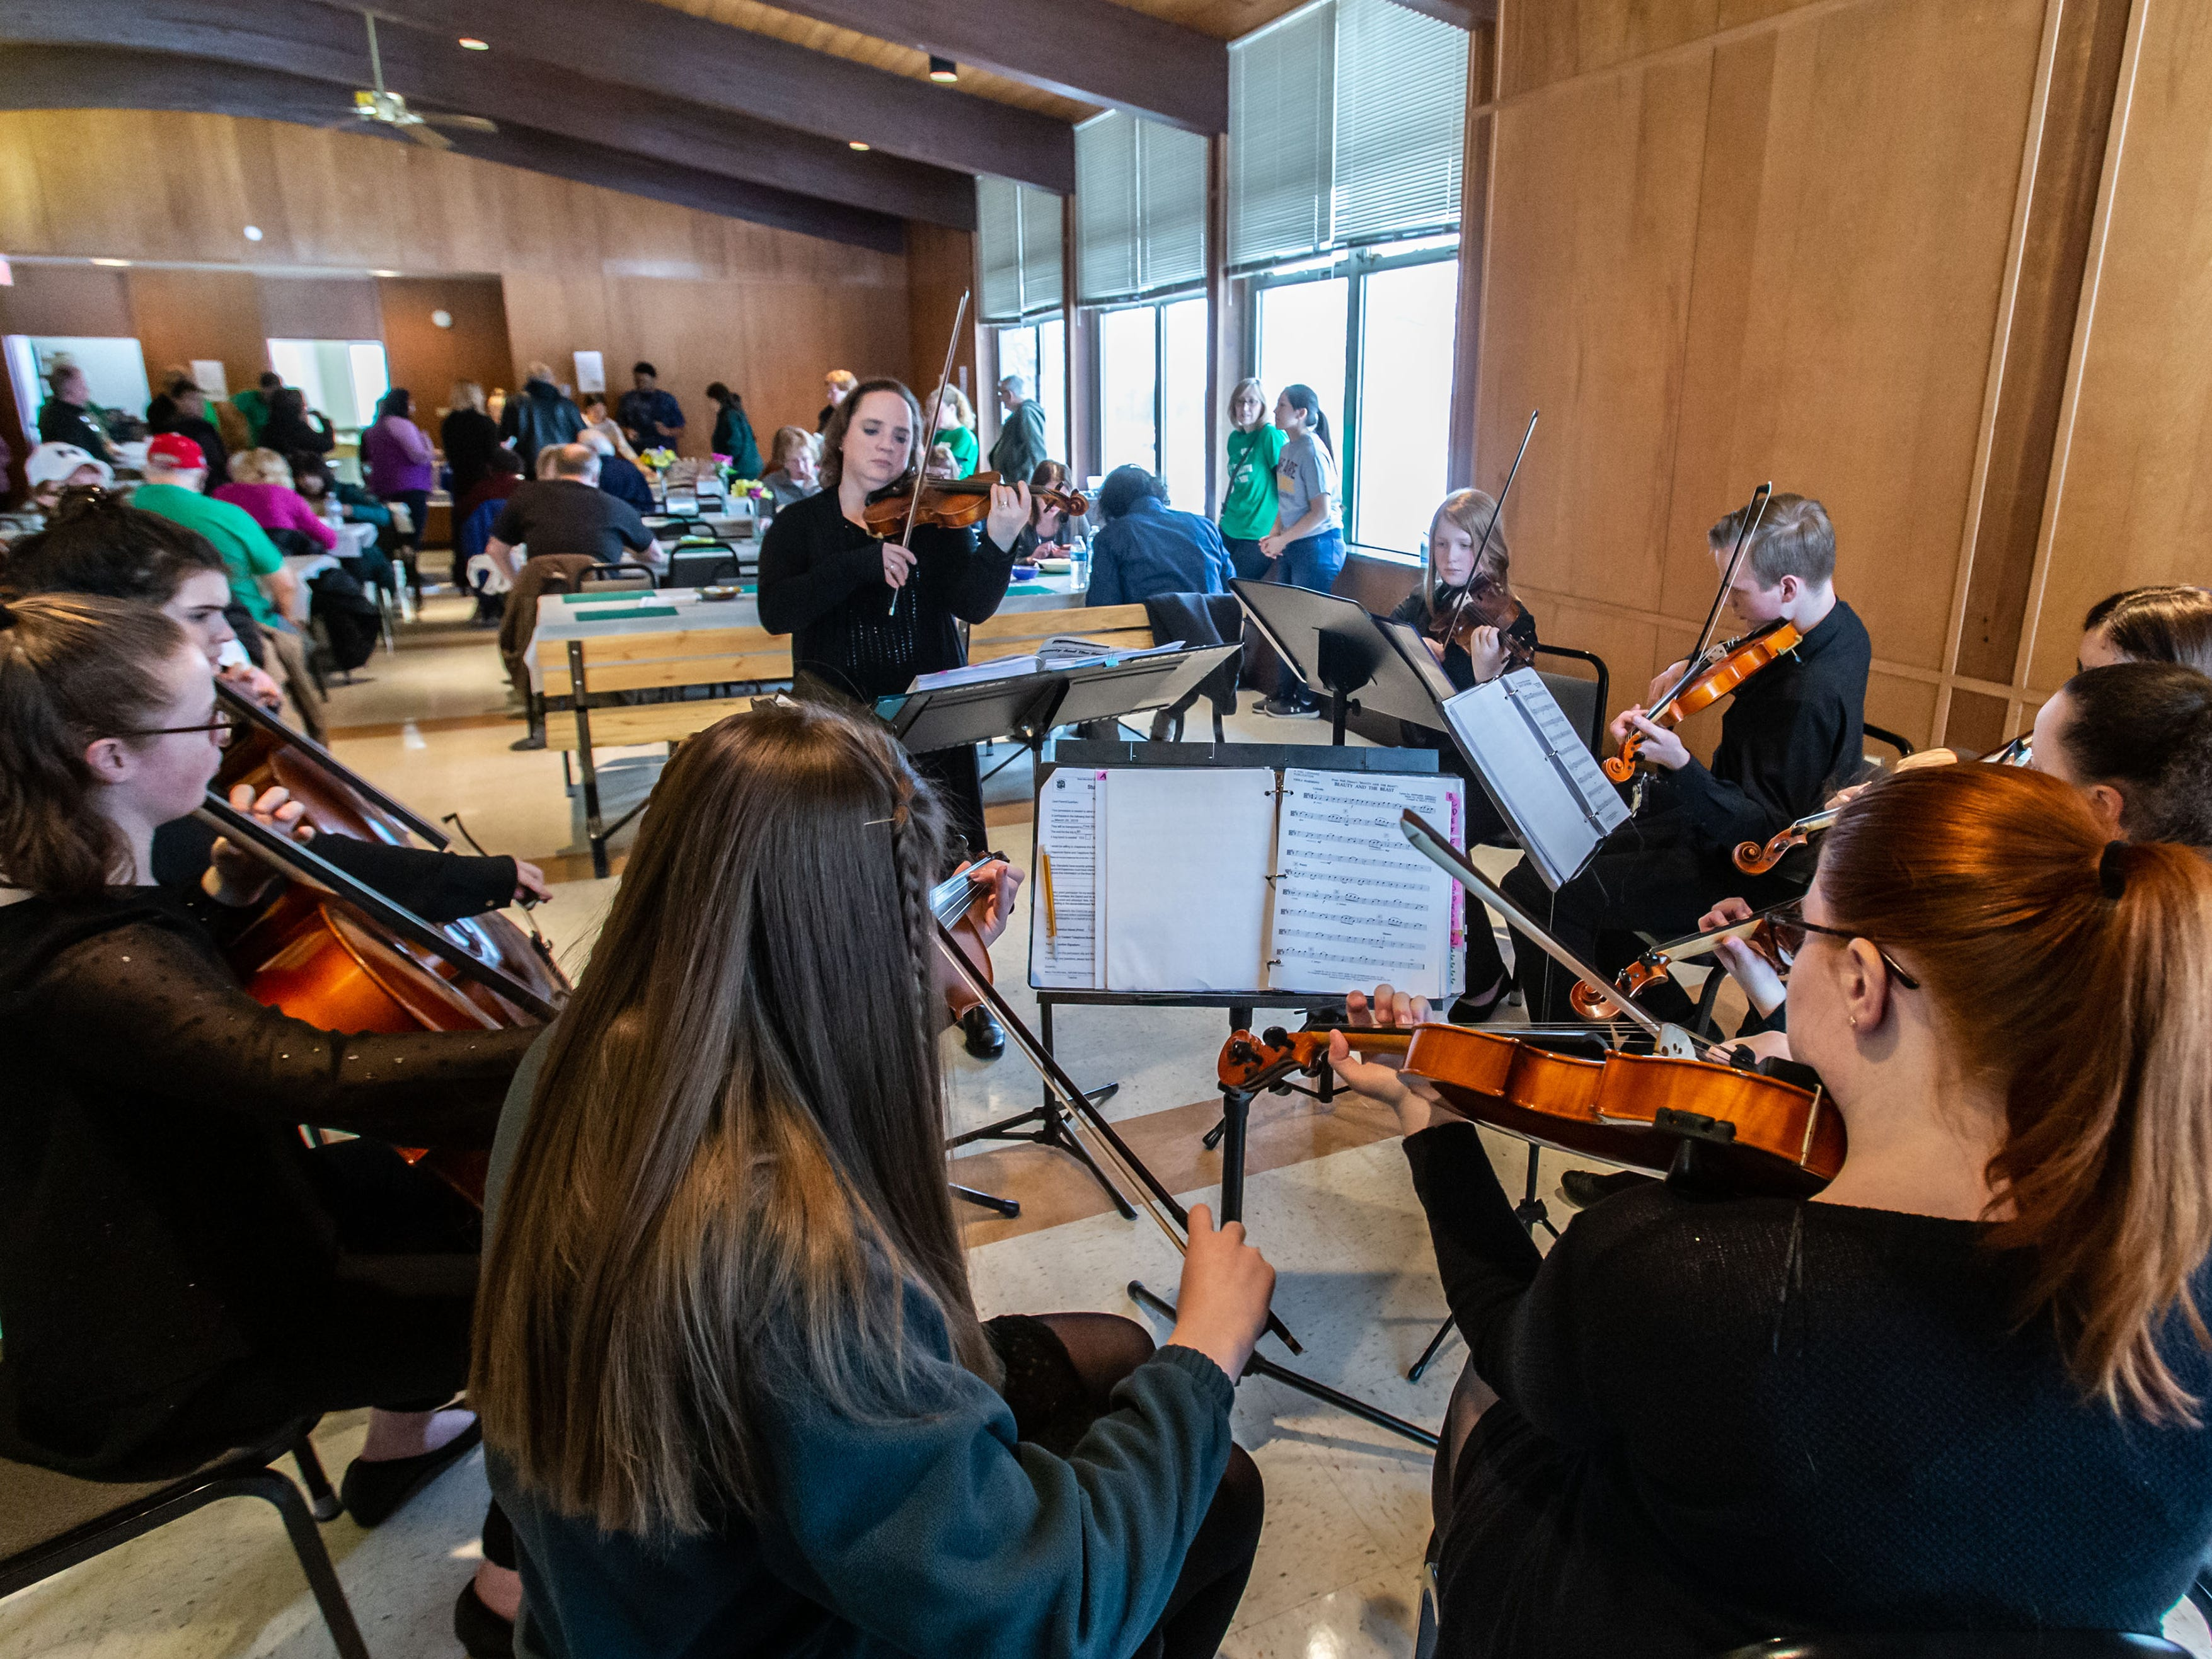 Members of the West Allis-West Milwaukee Shining Strings (string ensemble) perform during the 8th annual Empty Bowls event at the LaFollette Park Pavilion in West Allis on Saturday, March 2, 2019. The goal of the event, hosted by the Friends of LaFollette Park, is to collect food and raise funds for West Allis food pantries.